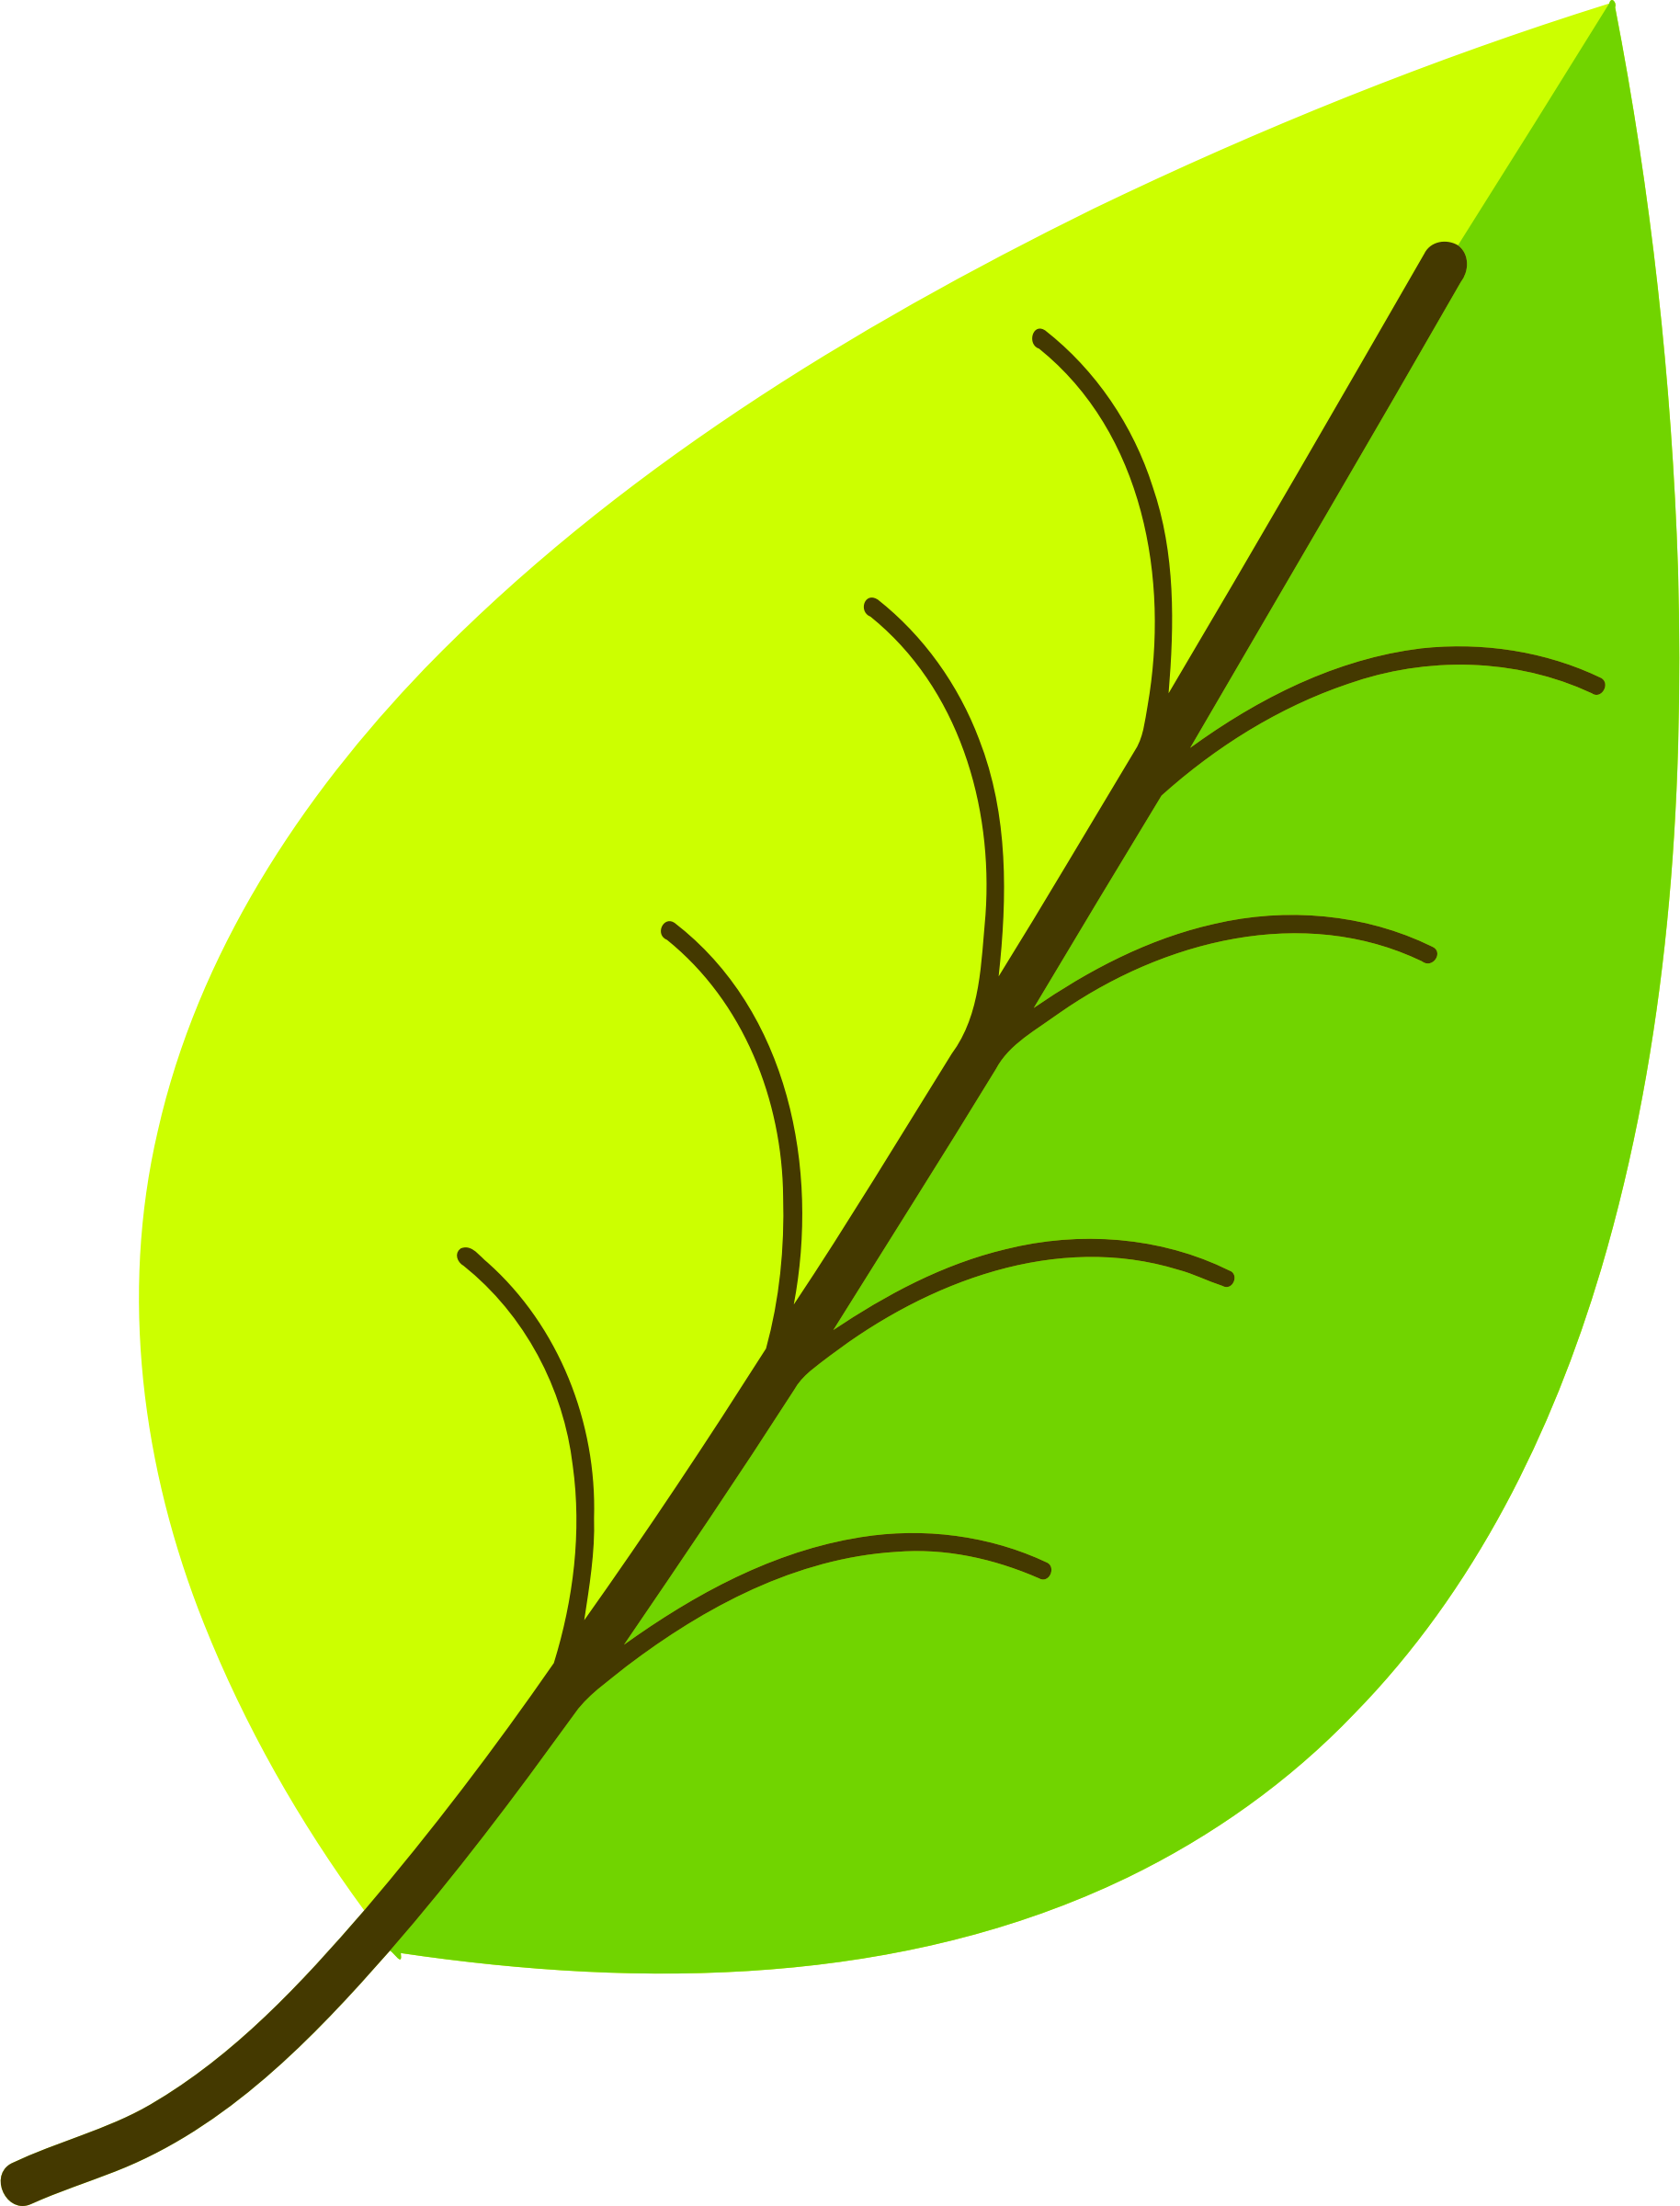 Two colour leaf vectorized by Firkin